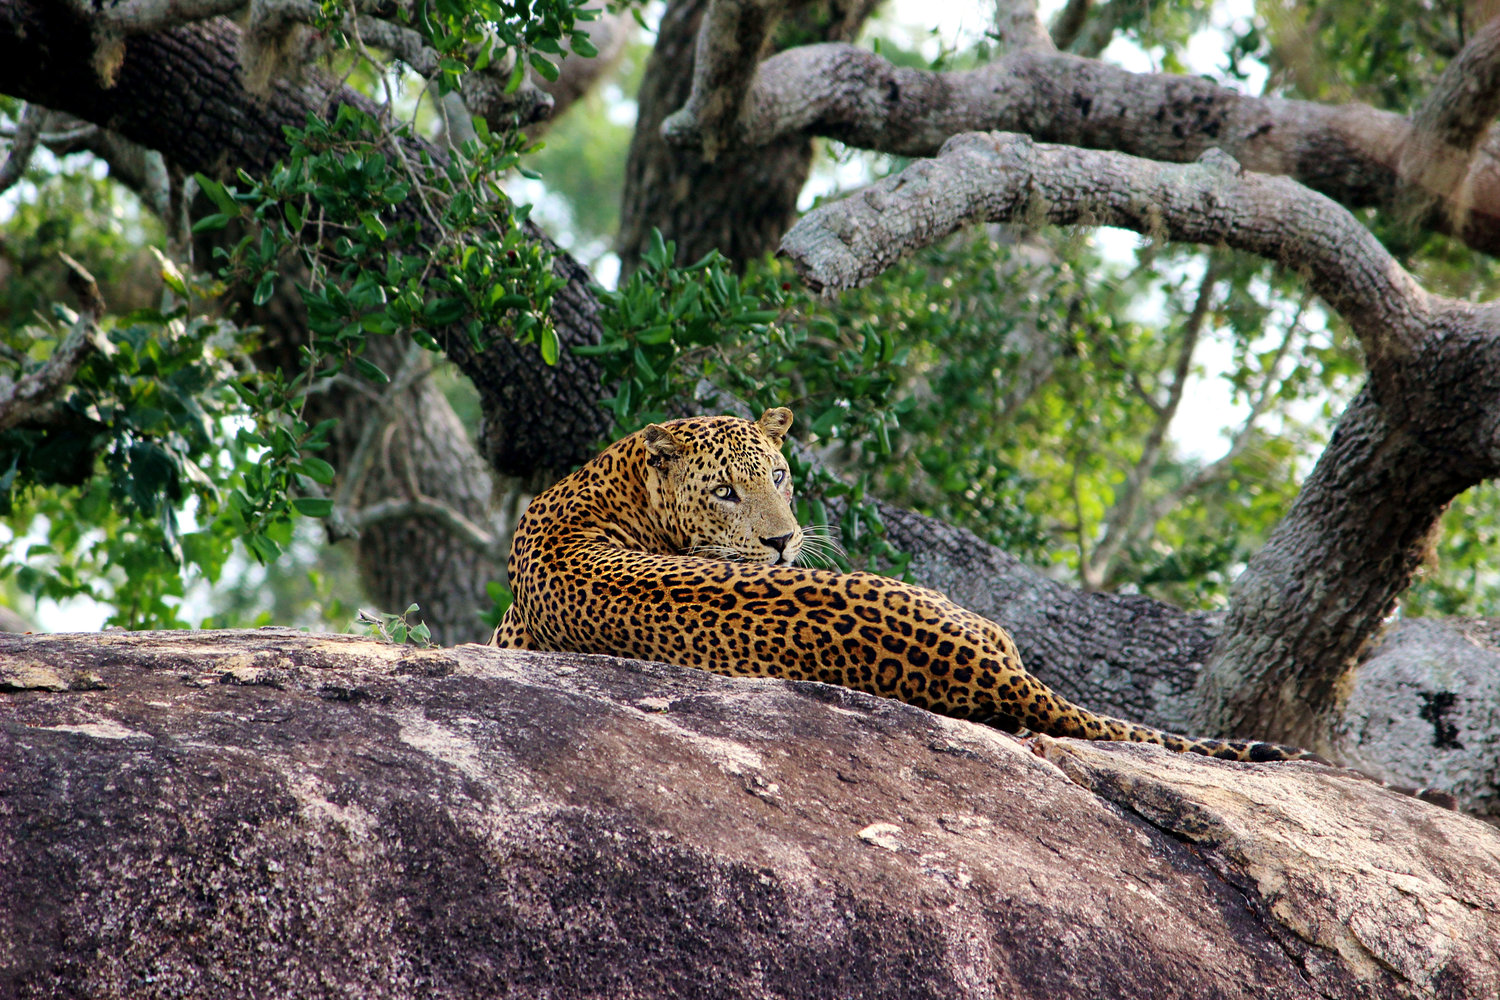 My first ever sighting of a wild Leopard. Yala National Park has the highest concentration of wild leopards in the world.